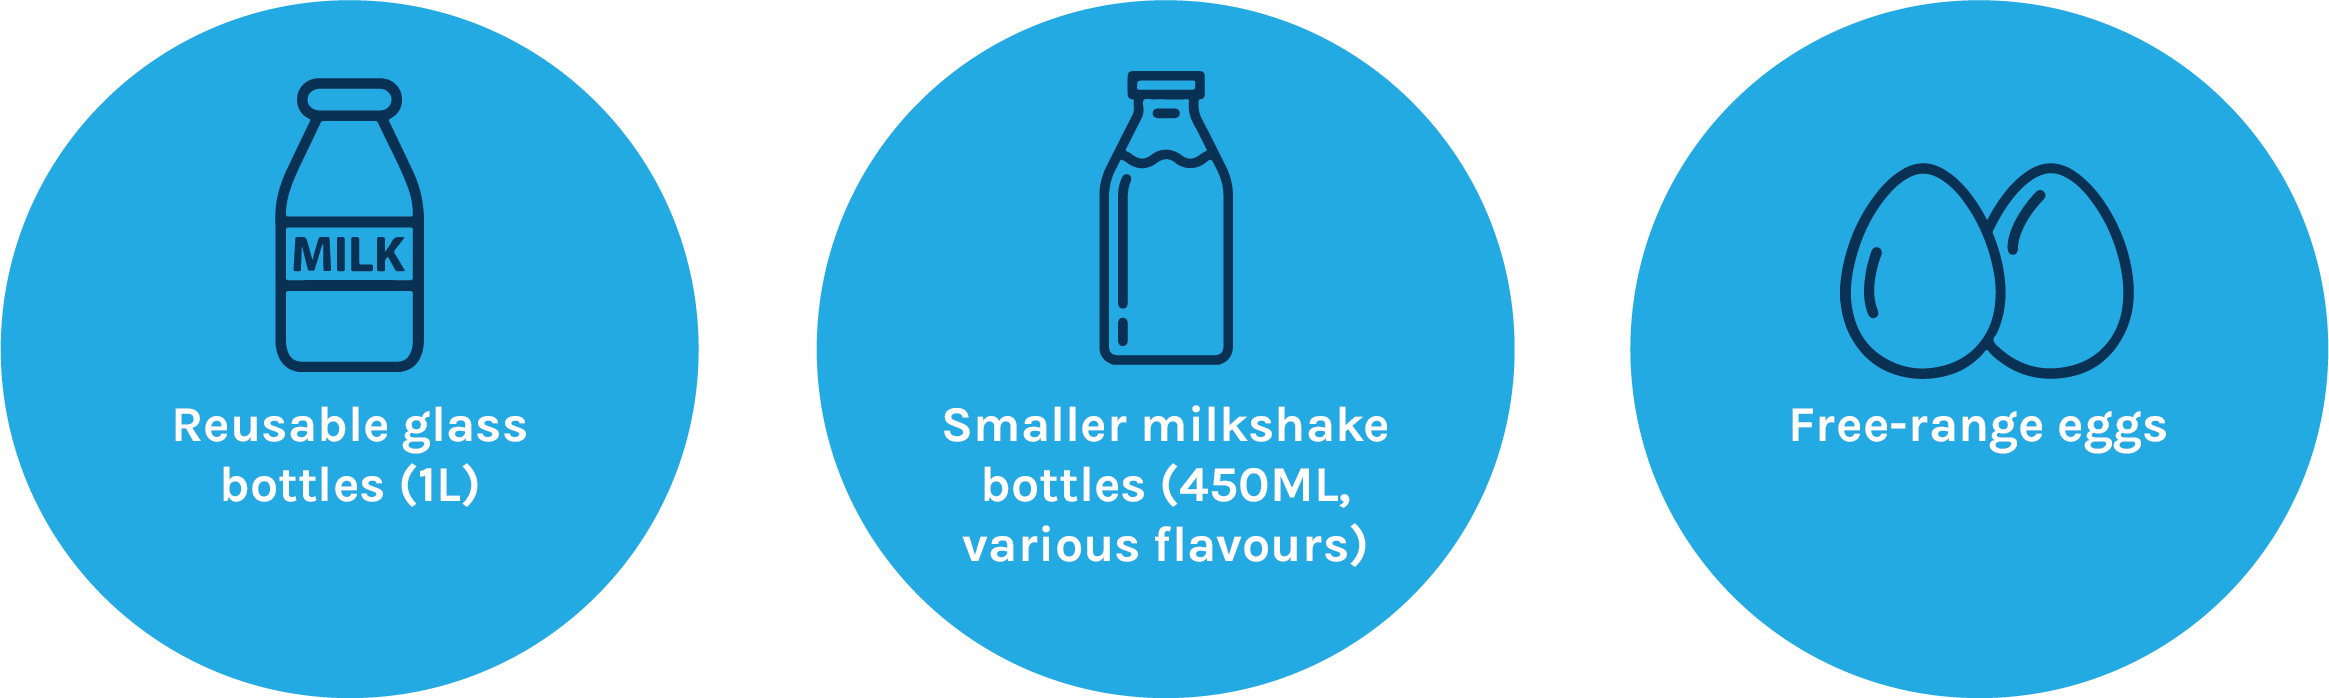 Simply_Milk_other-products.png